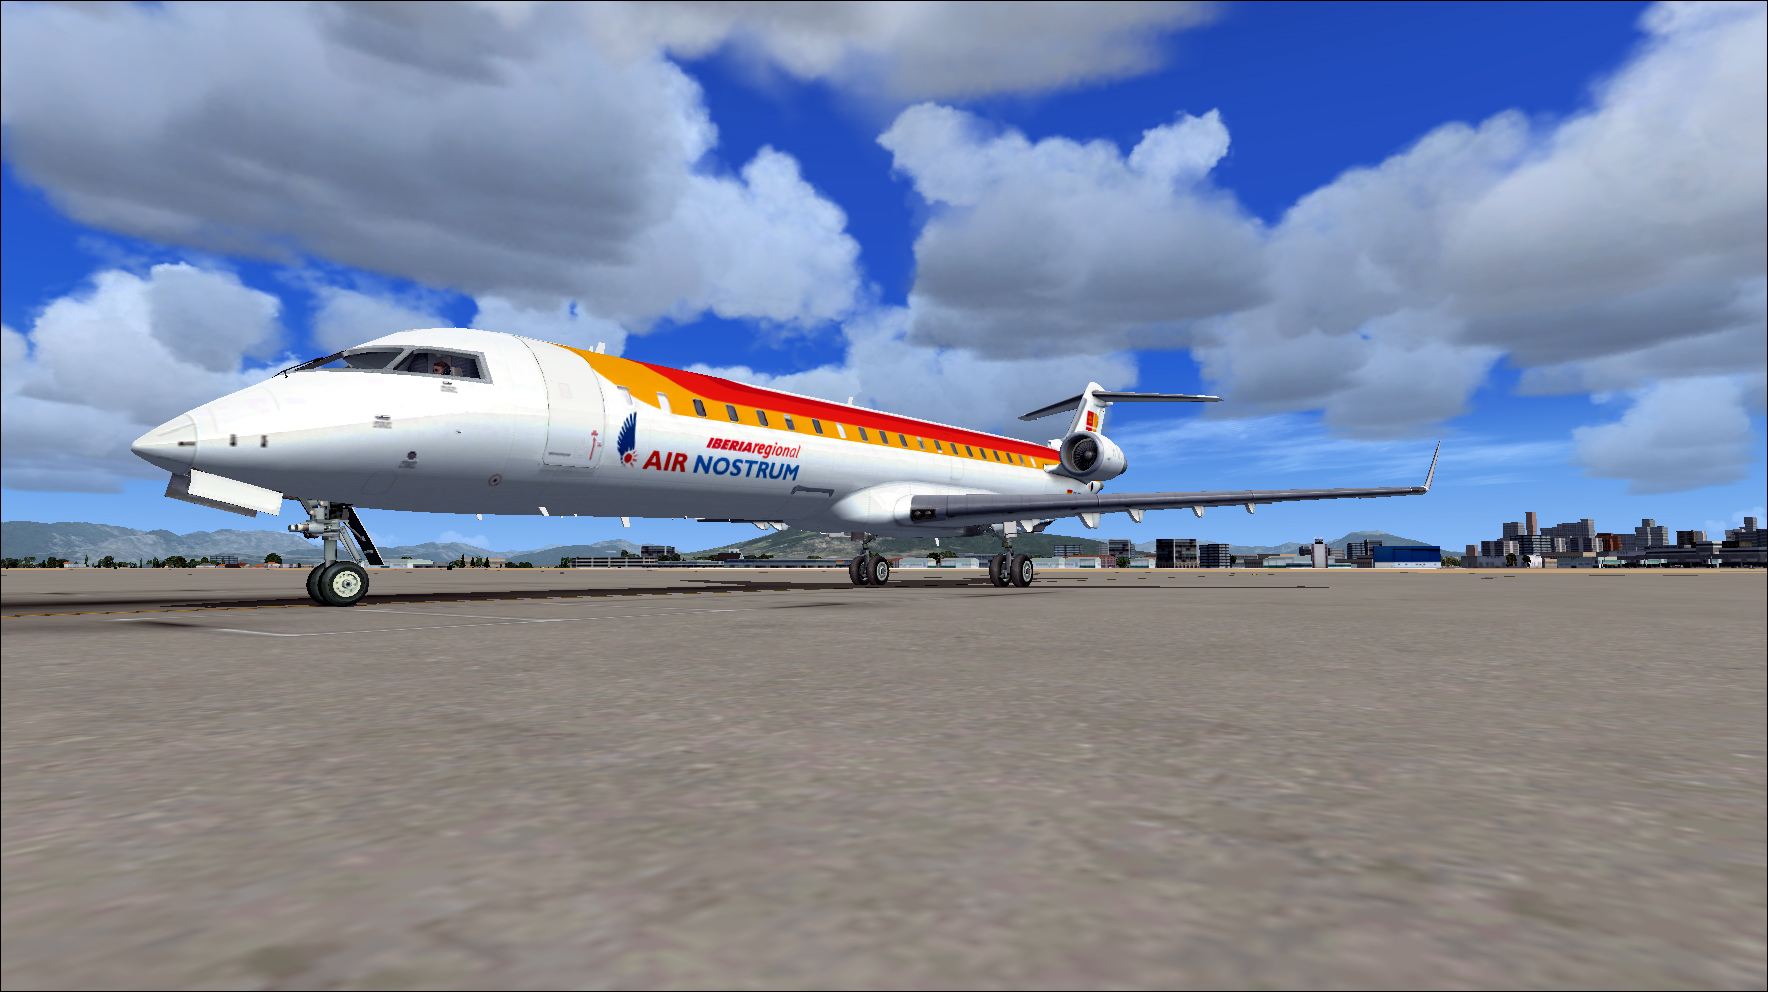 PERFECT FLIGHT - FSX MISSIONS IBERIA CRJ-700